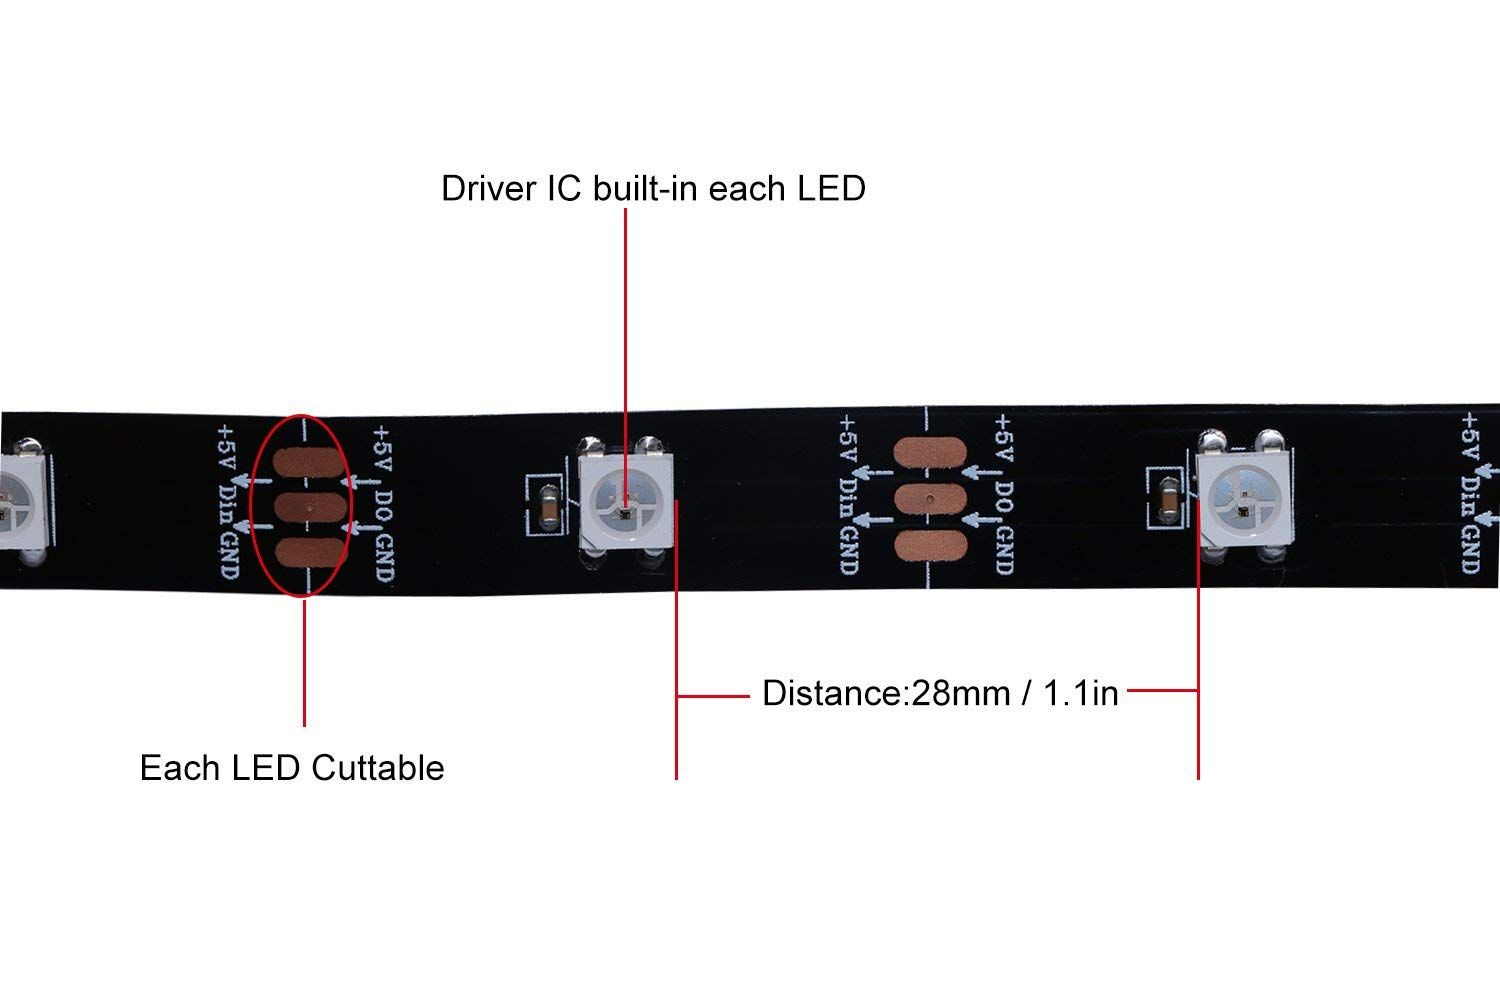 Hjhx Ws2812b Led Strip 164ft 300leds Individually Addressable Driver Circuit Light Smd5050 Rgb Magic Color Flexible Rope Lights Non Waterproof